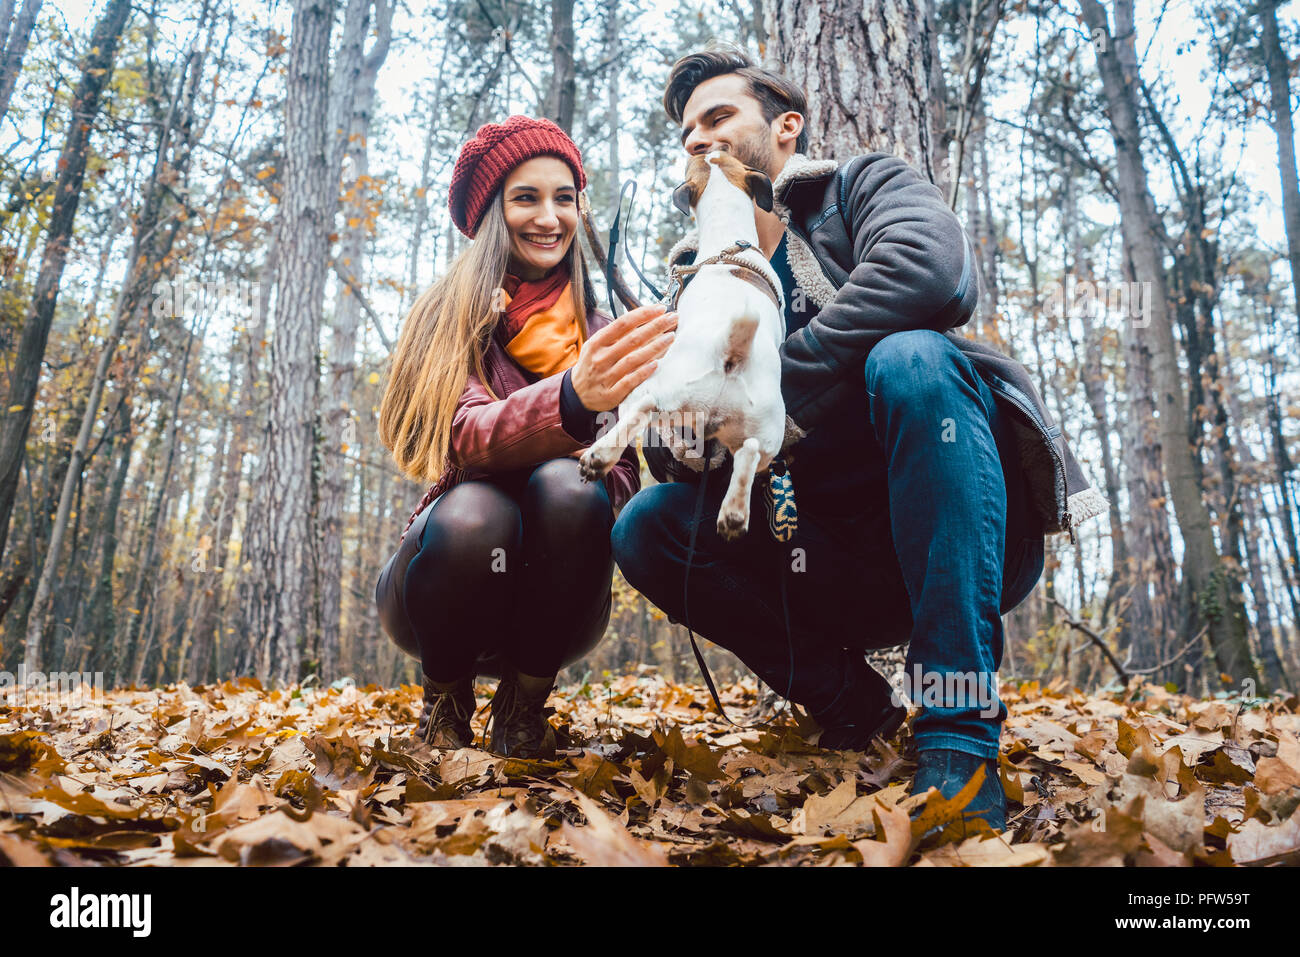 Couple of woman and man playing with their dog in fall - Stock Image